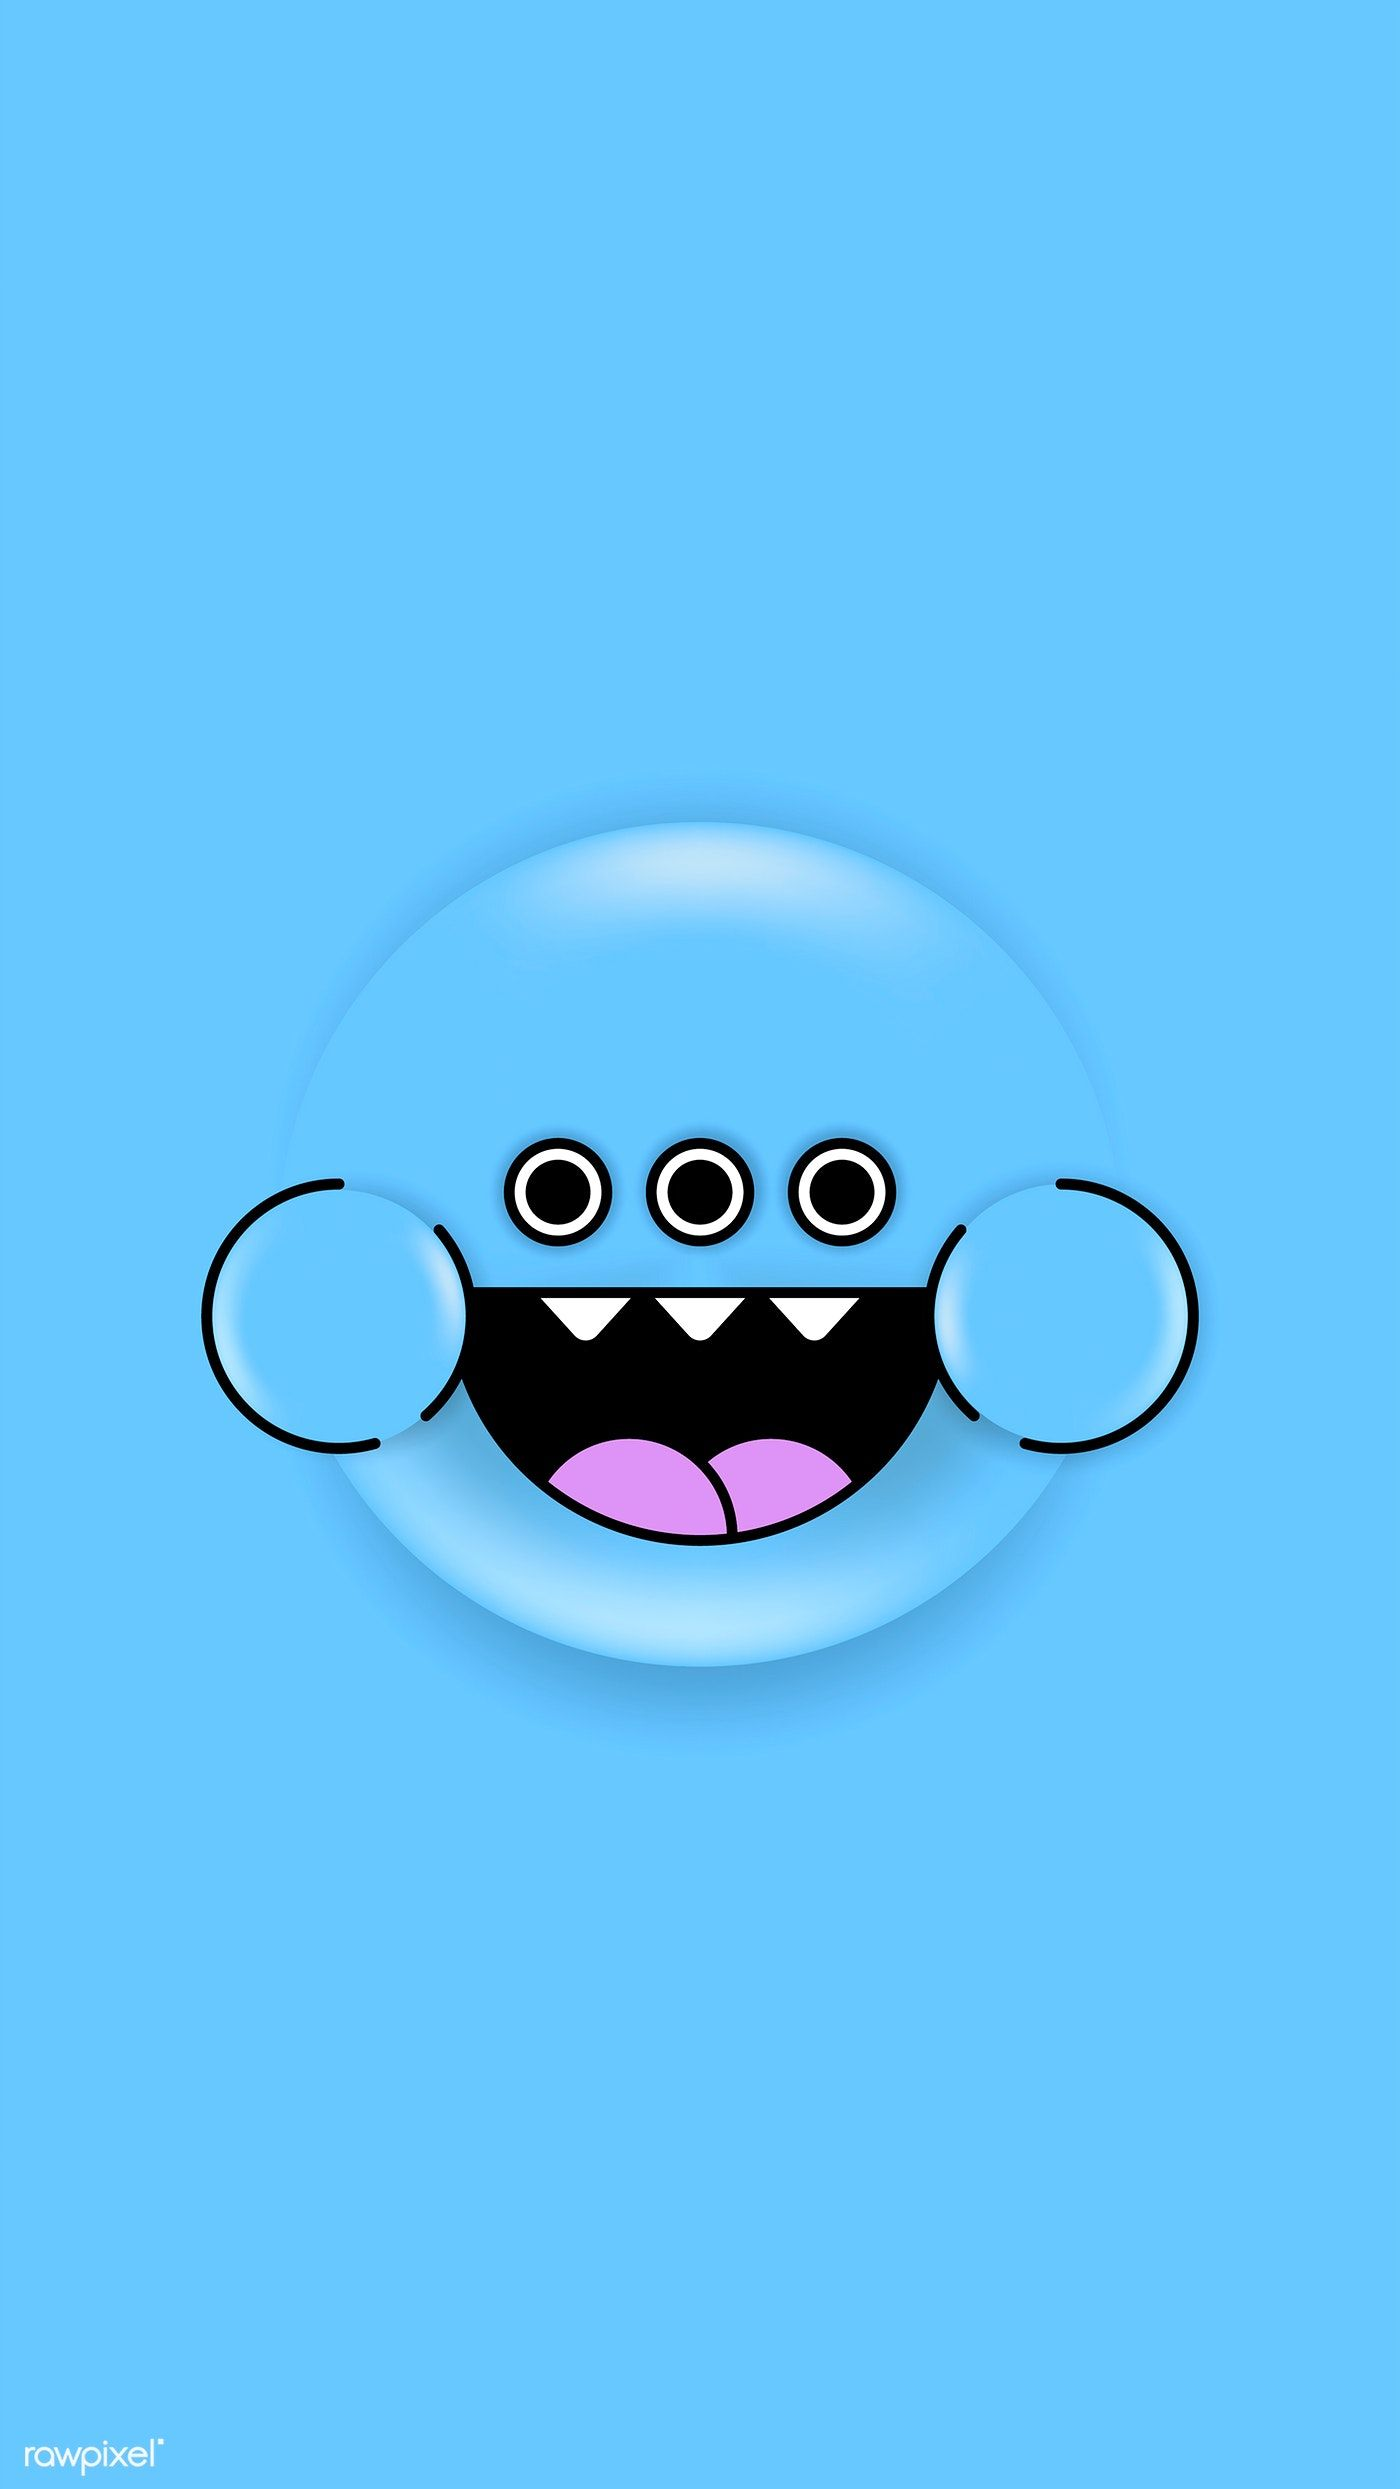 Colorful And Cute Monster Emoji Phone Background Vector Free Image By Rawpixel Com Te In 2020 Cute Monsters Emoji Monster Stickers